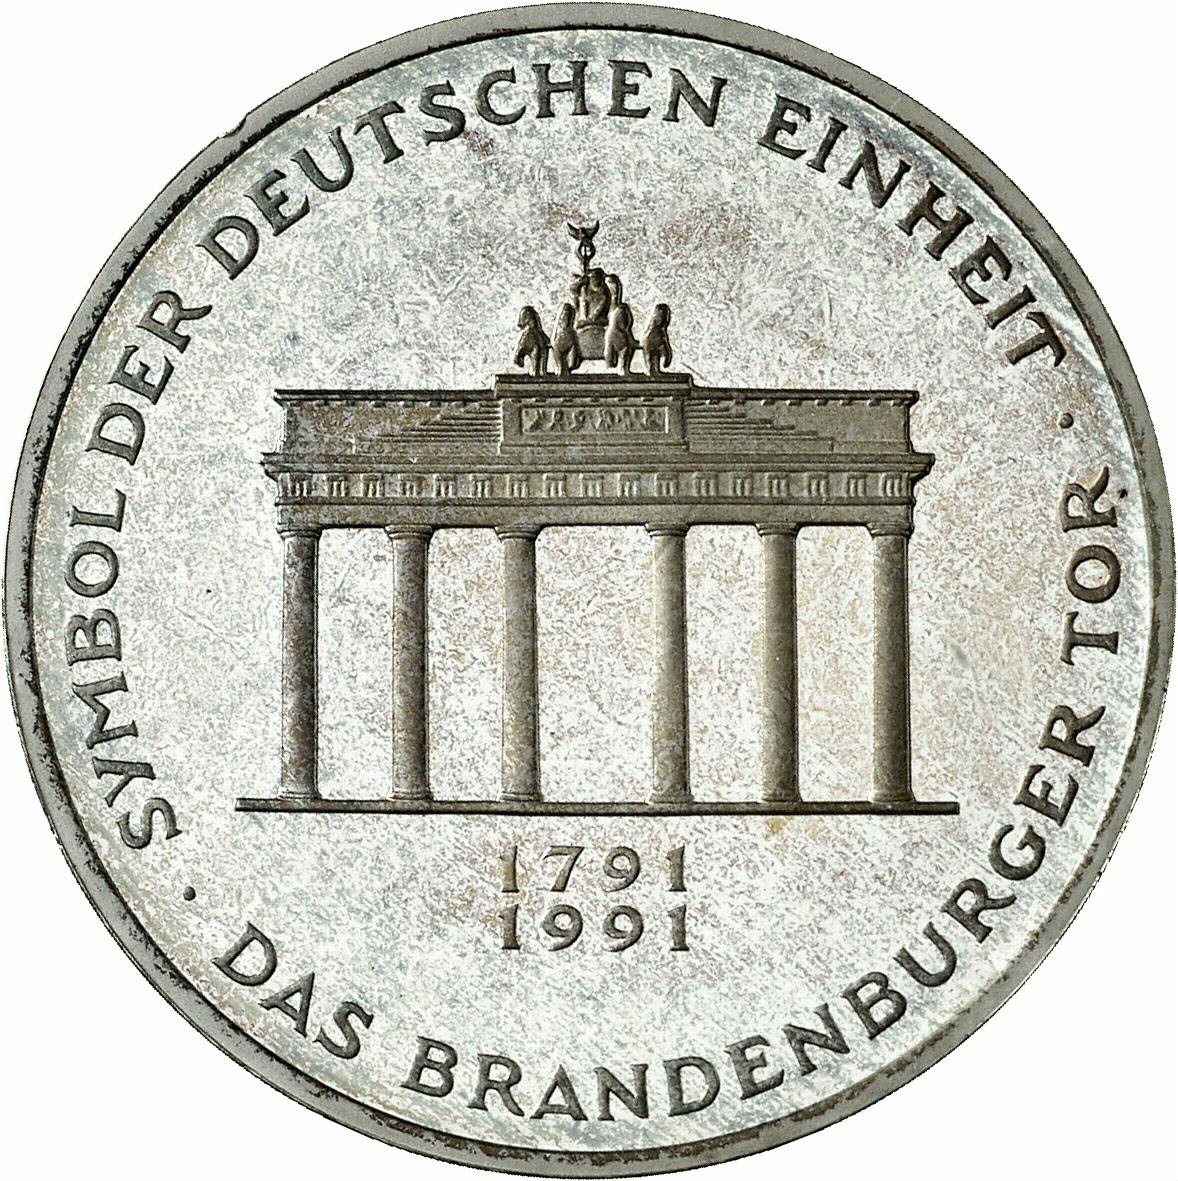 DE 10 Deutsche Mark 1991 A